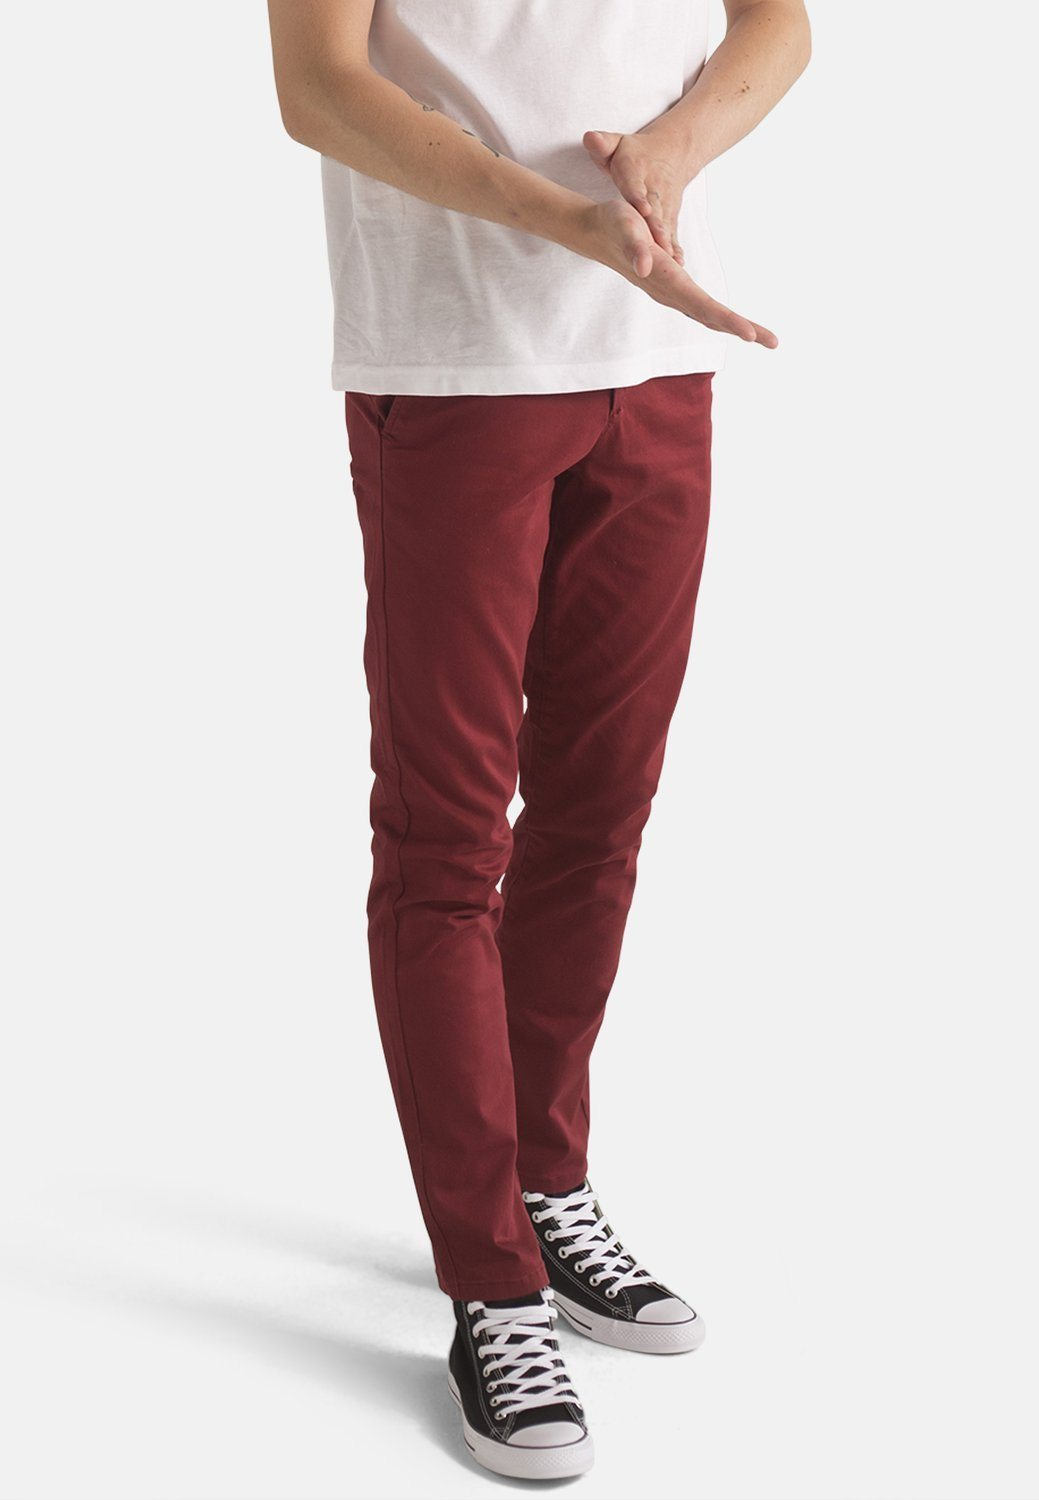 Jeans - MONKEE Mens Organic Chino In Wine